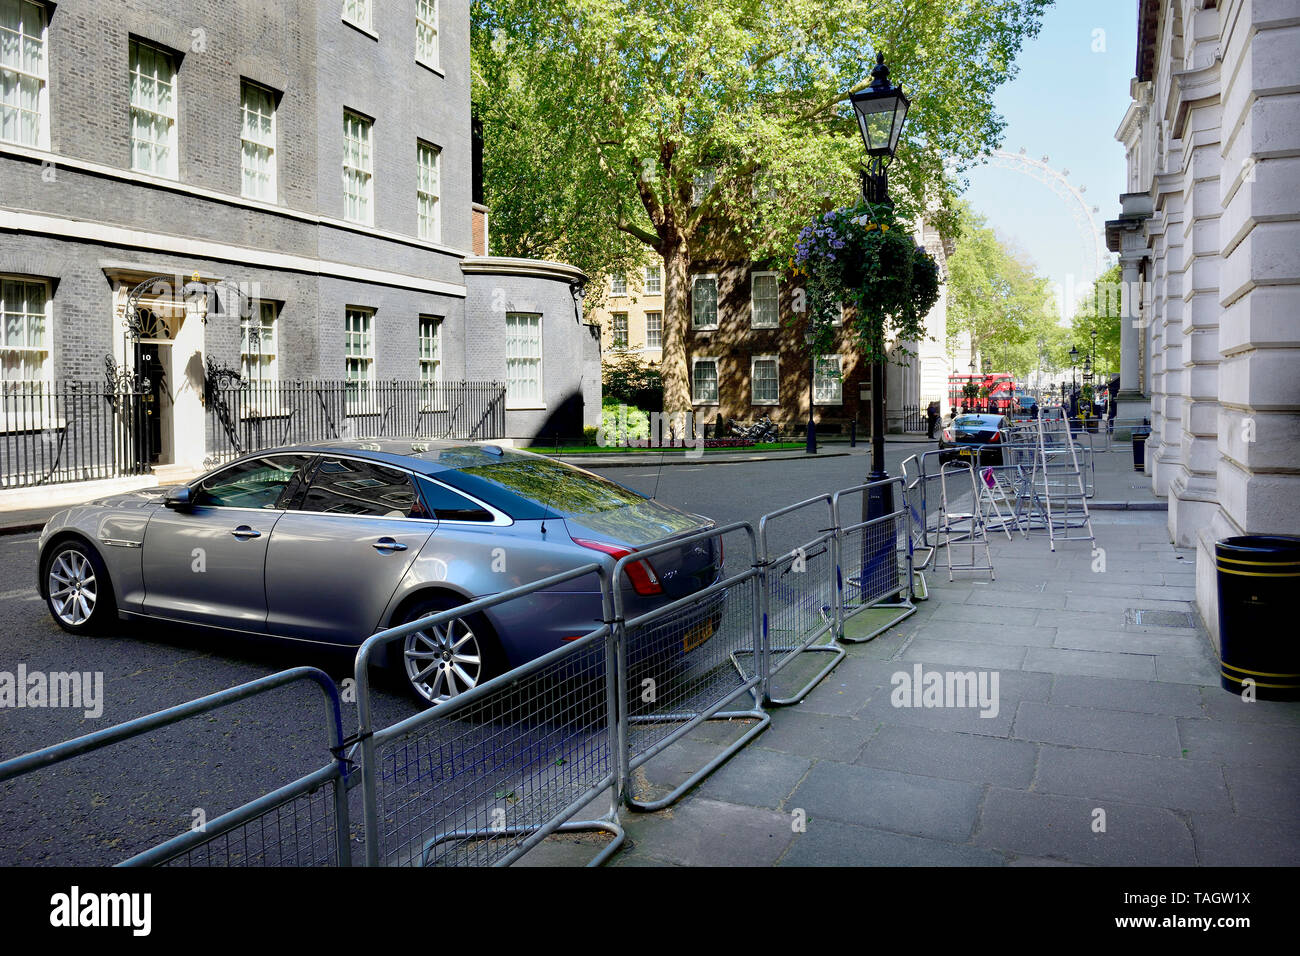 London, England, UK. Downing Street, empty, ministerial car waiting. Empty press enclosure (right, behind the barrier) - Stock Image